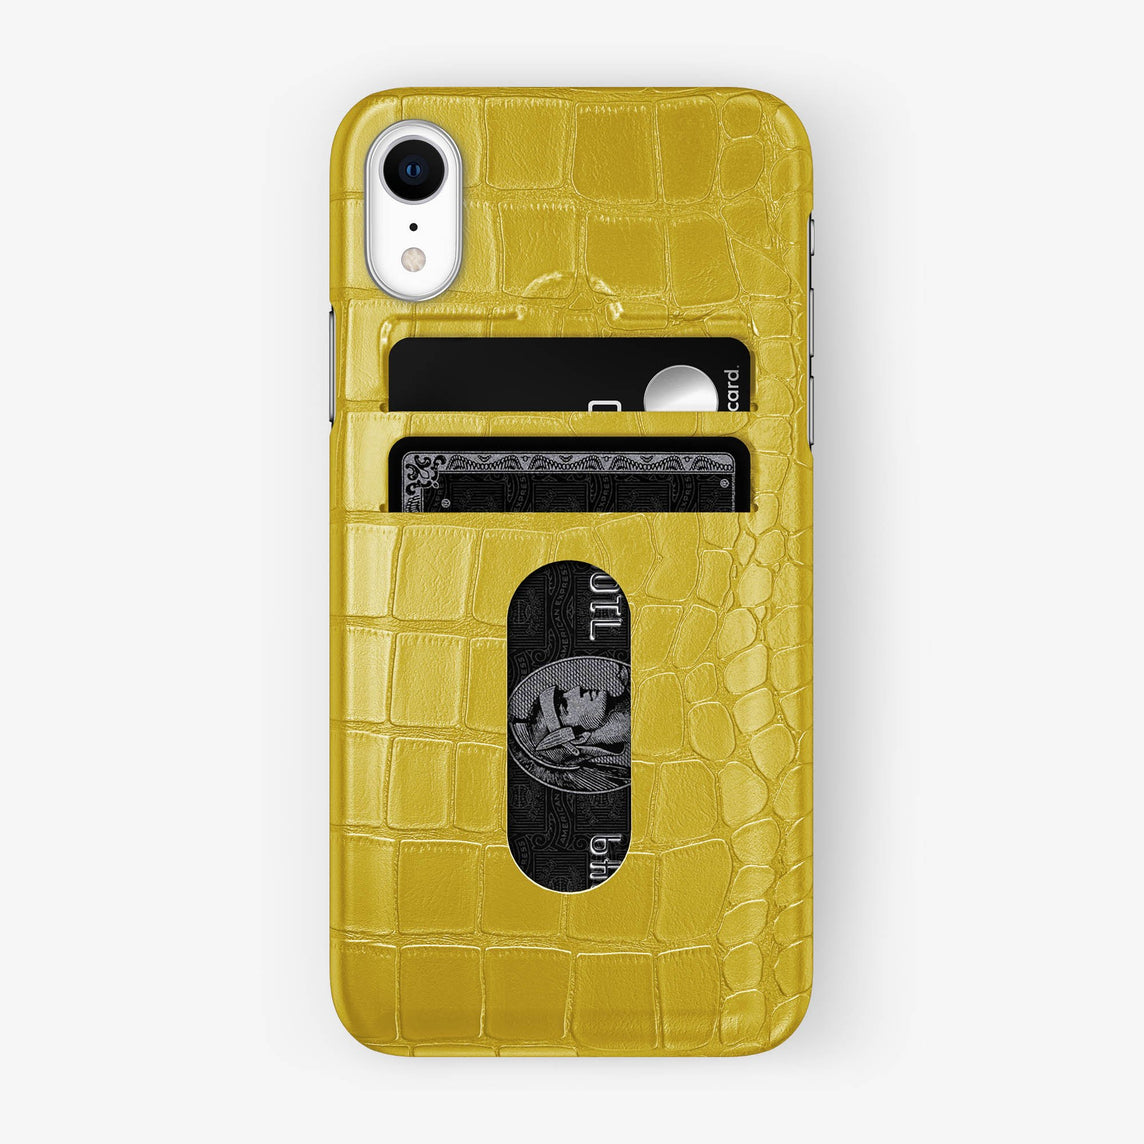 Alligator [iPhone Card Holder Case] [model:iphone-xr-case] [colour:yellow] [finishing:stainless-steel]